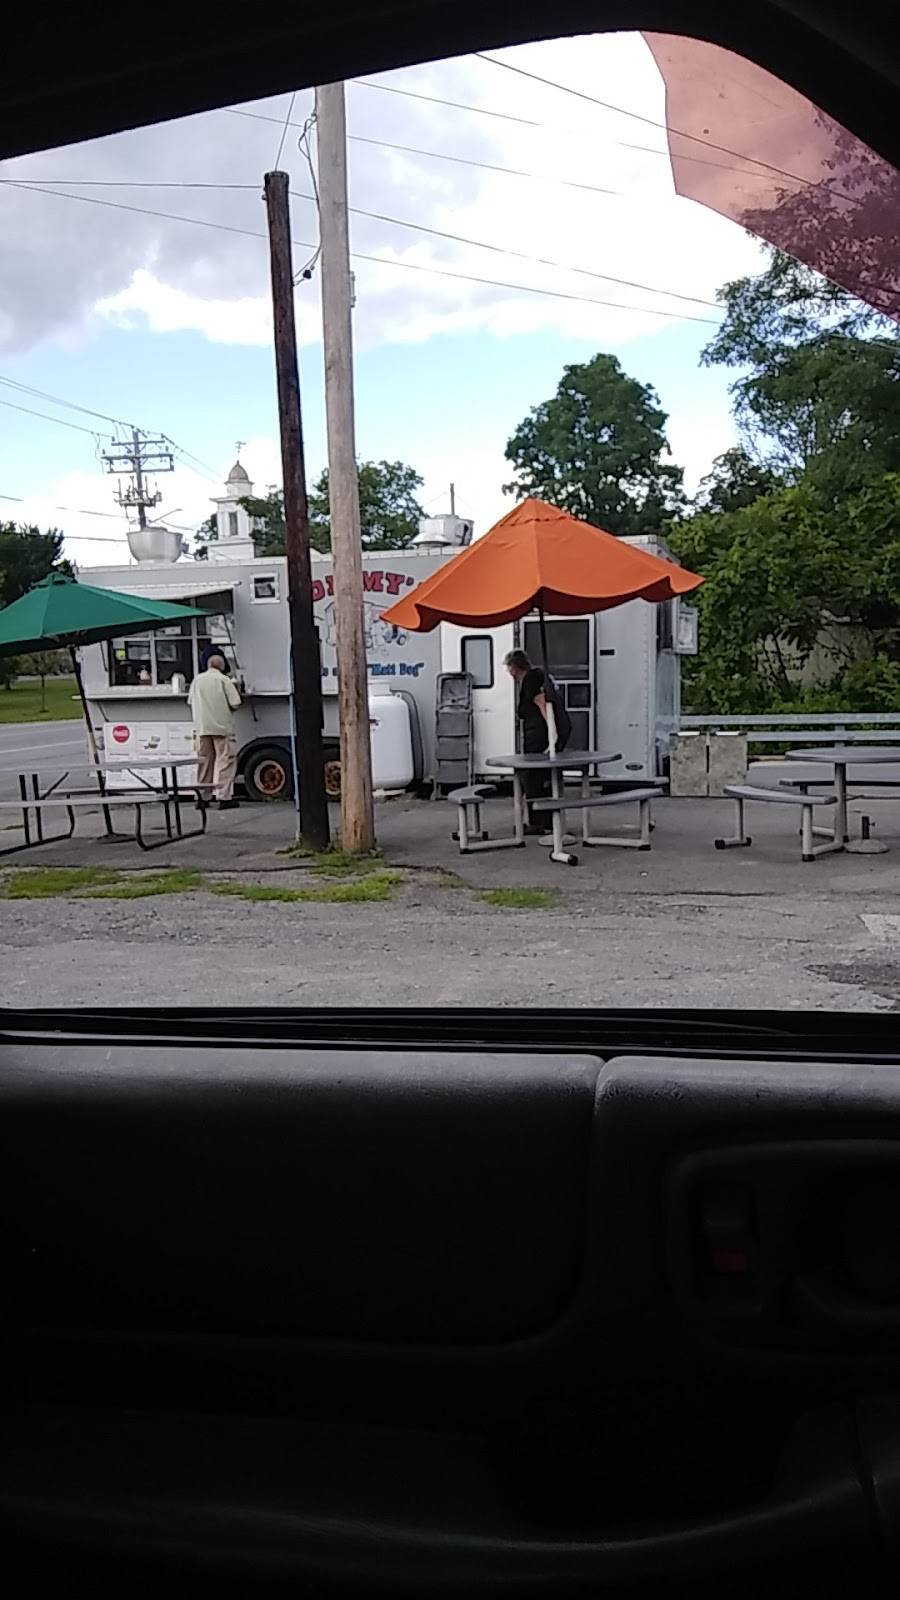 Tommys Hot Dog Stand   meal takeaway   4868 NY-81, Greenville, NY 12083, USA